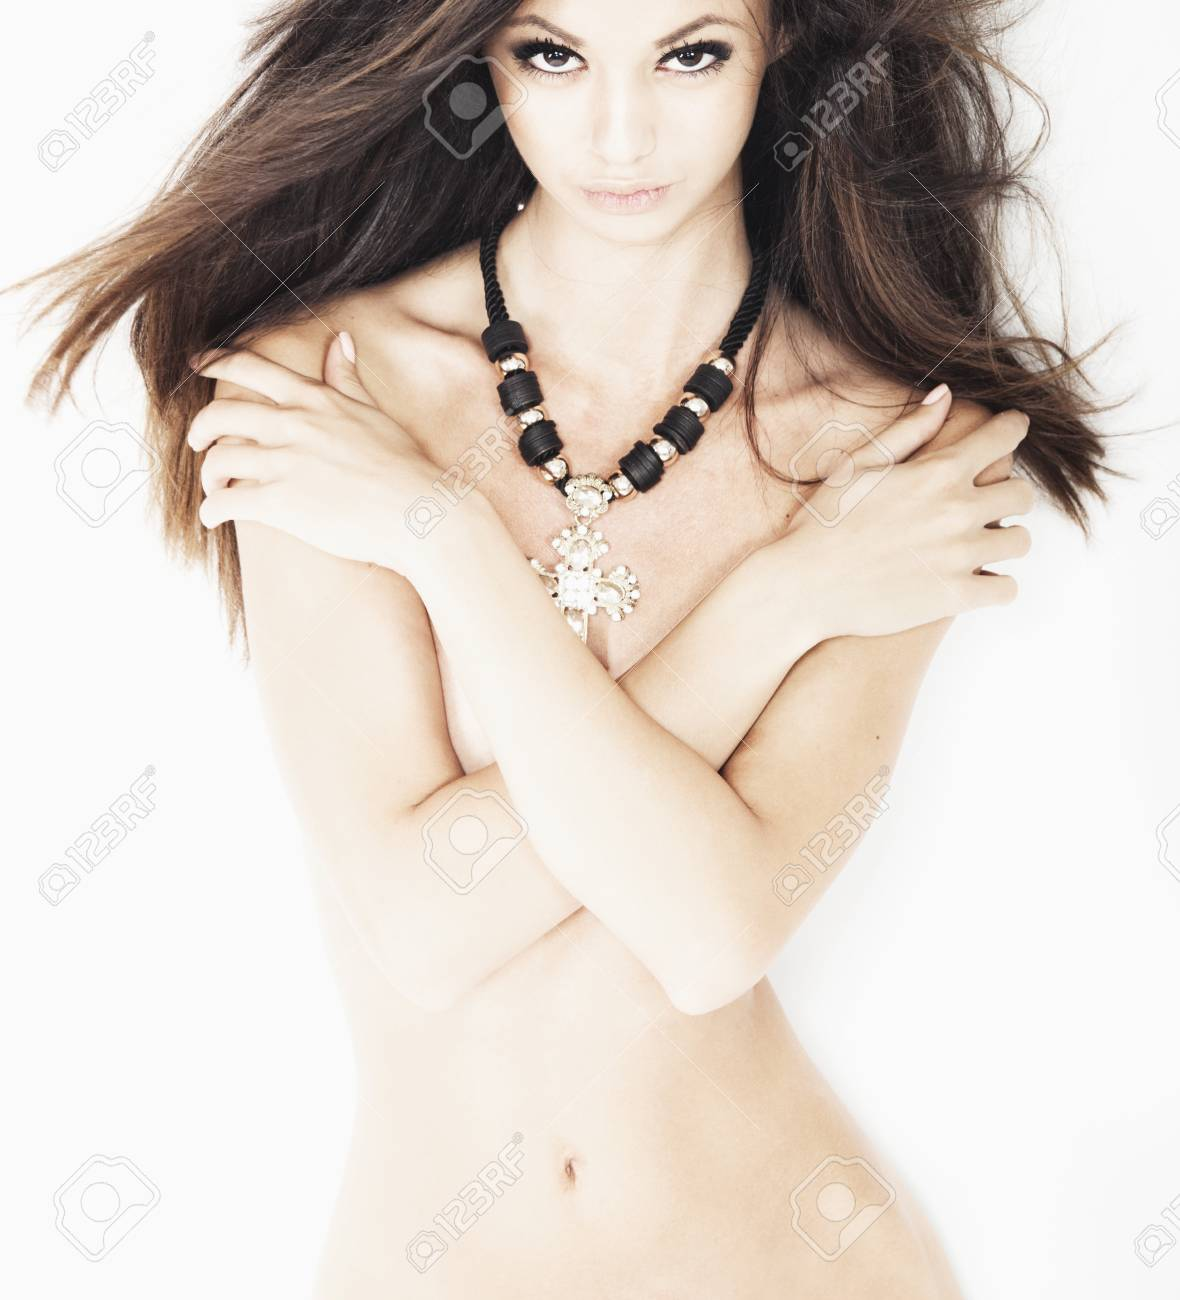 Stock Photo Young Beautiful Nacked Brunette Woman Posing On White Background